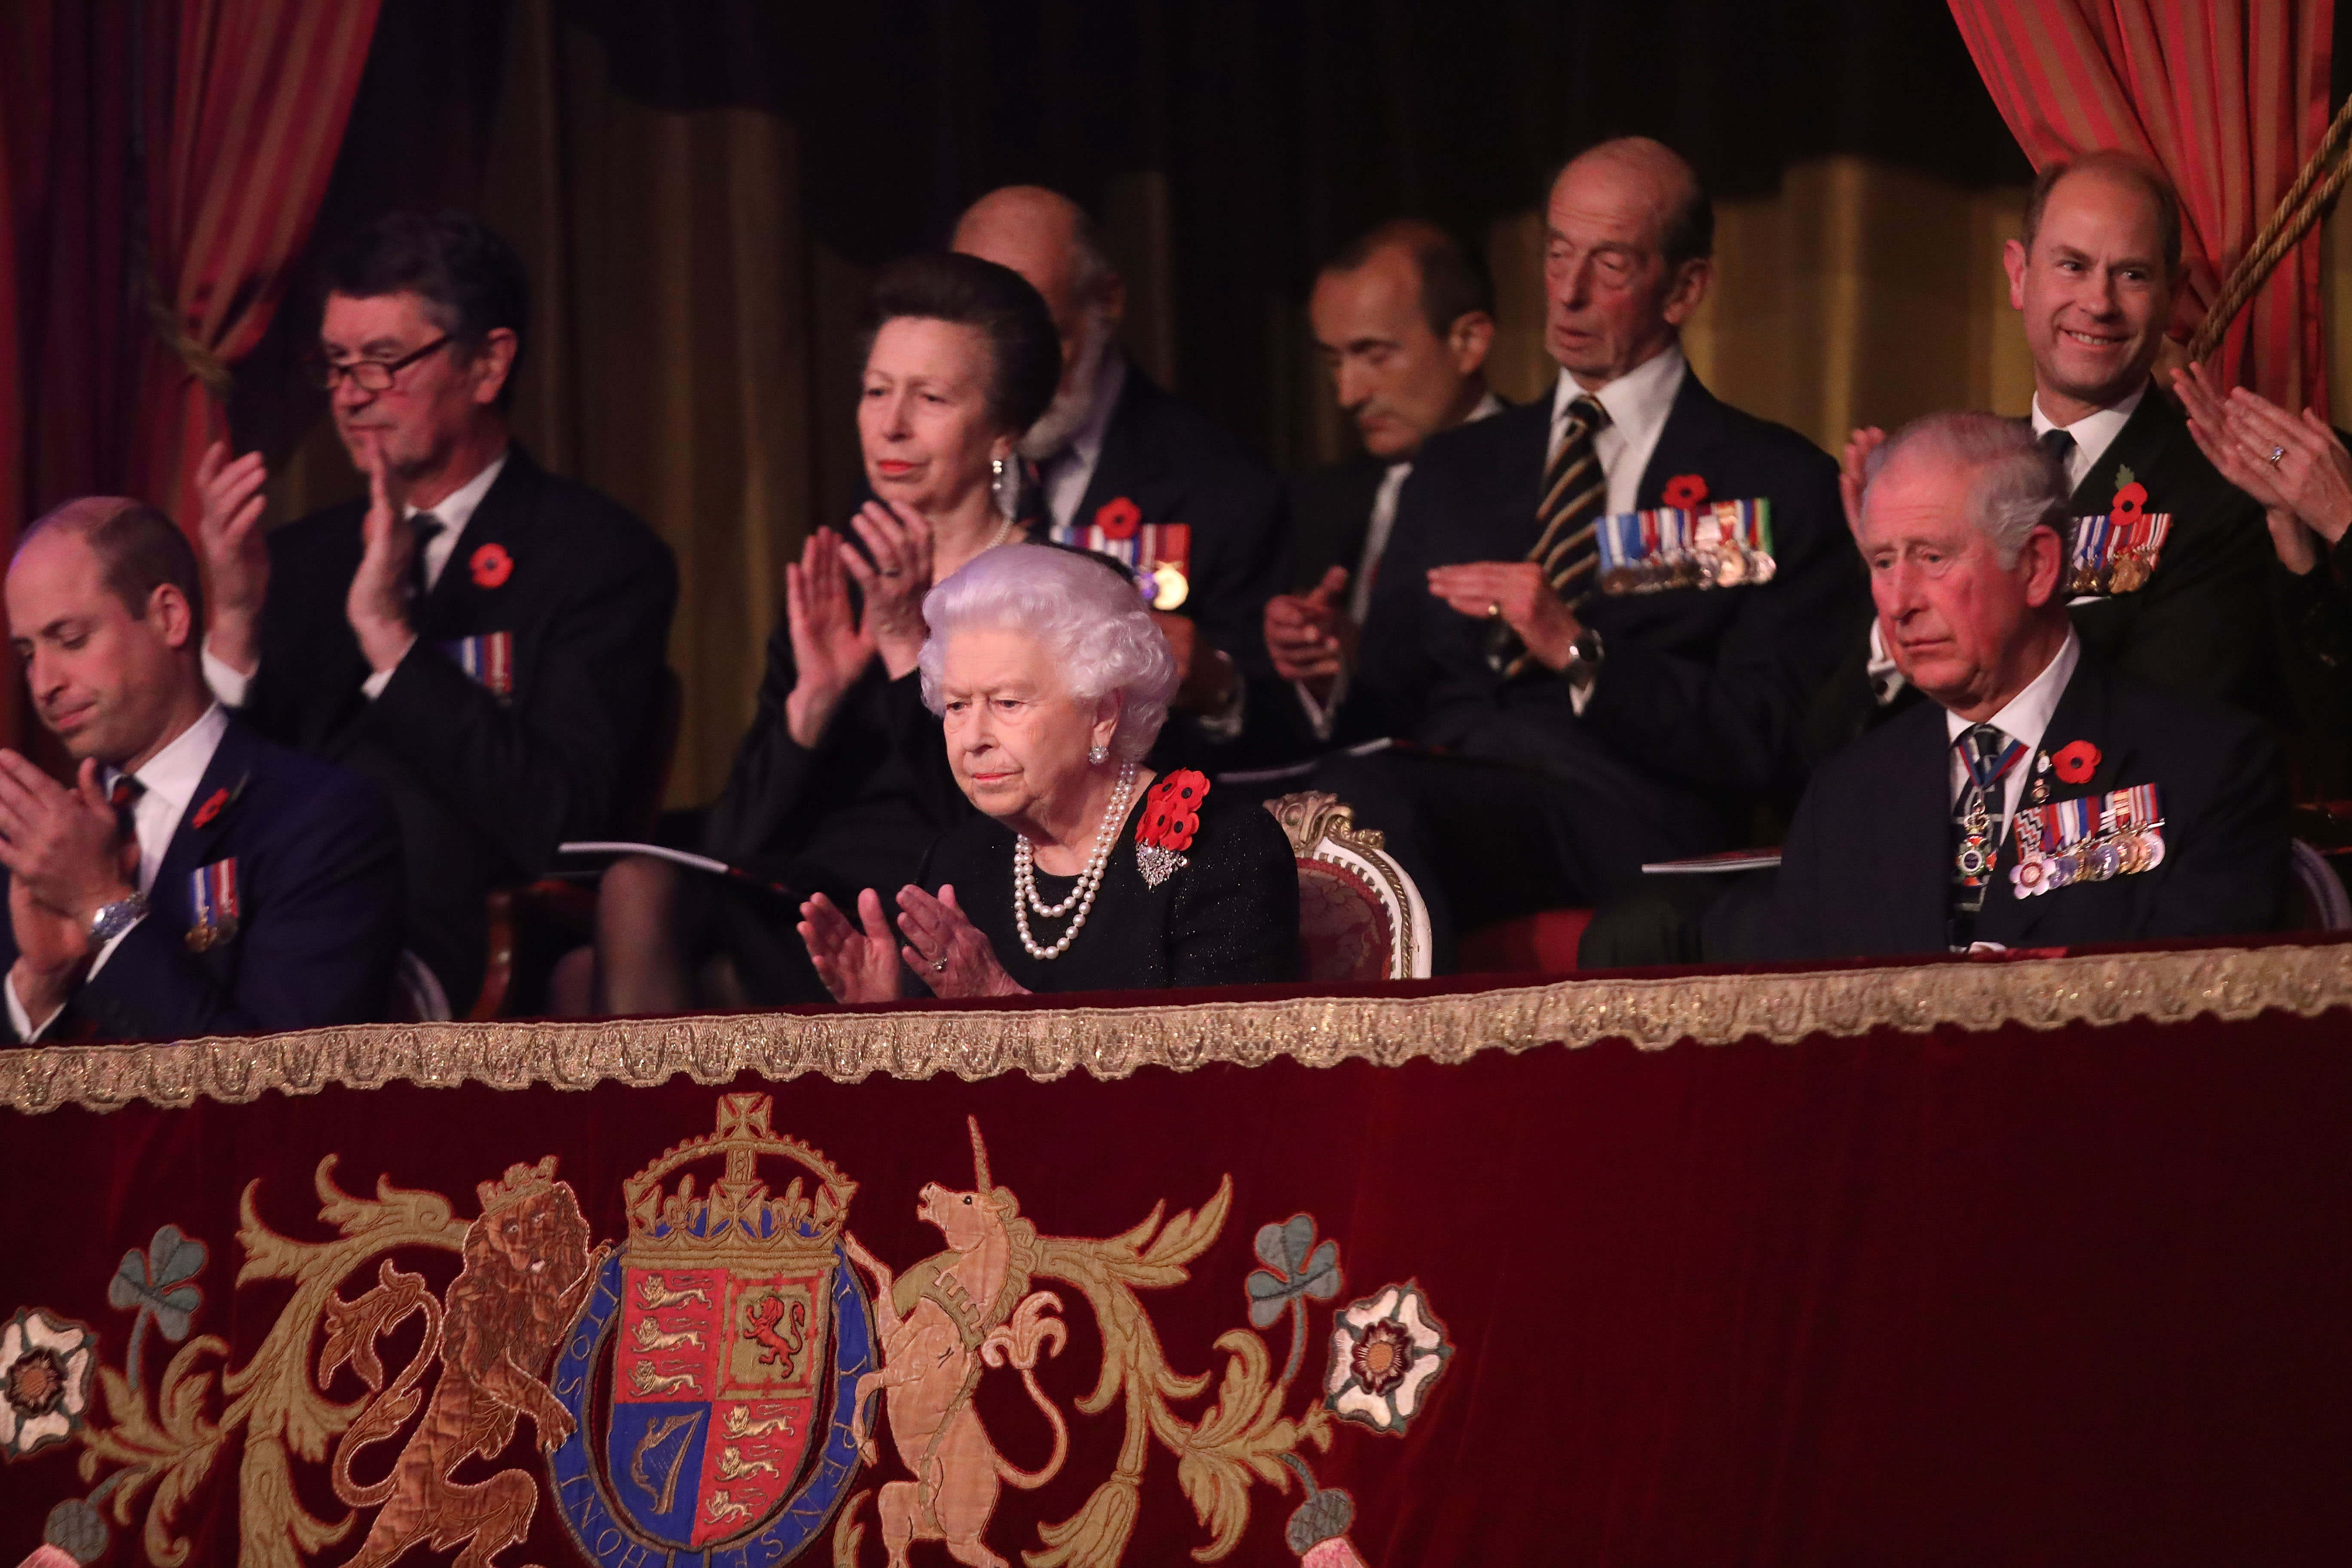 Royal Family Solemnly Commemorates Remembrance Day 2018 In London